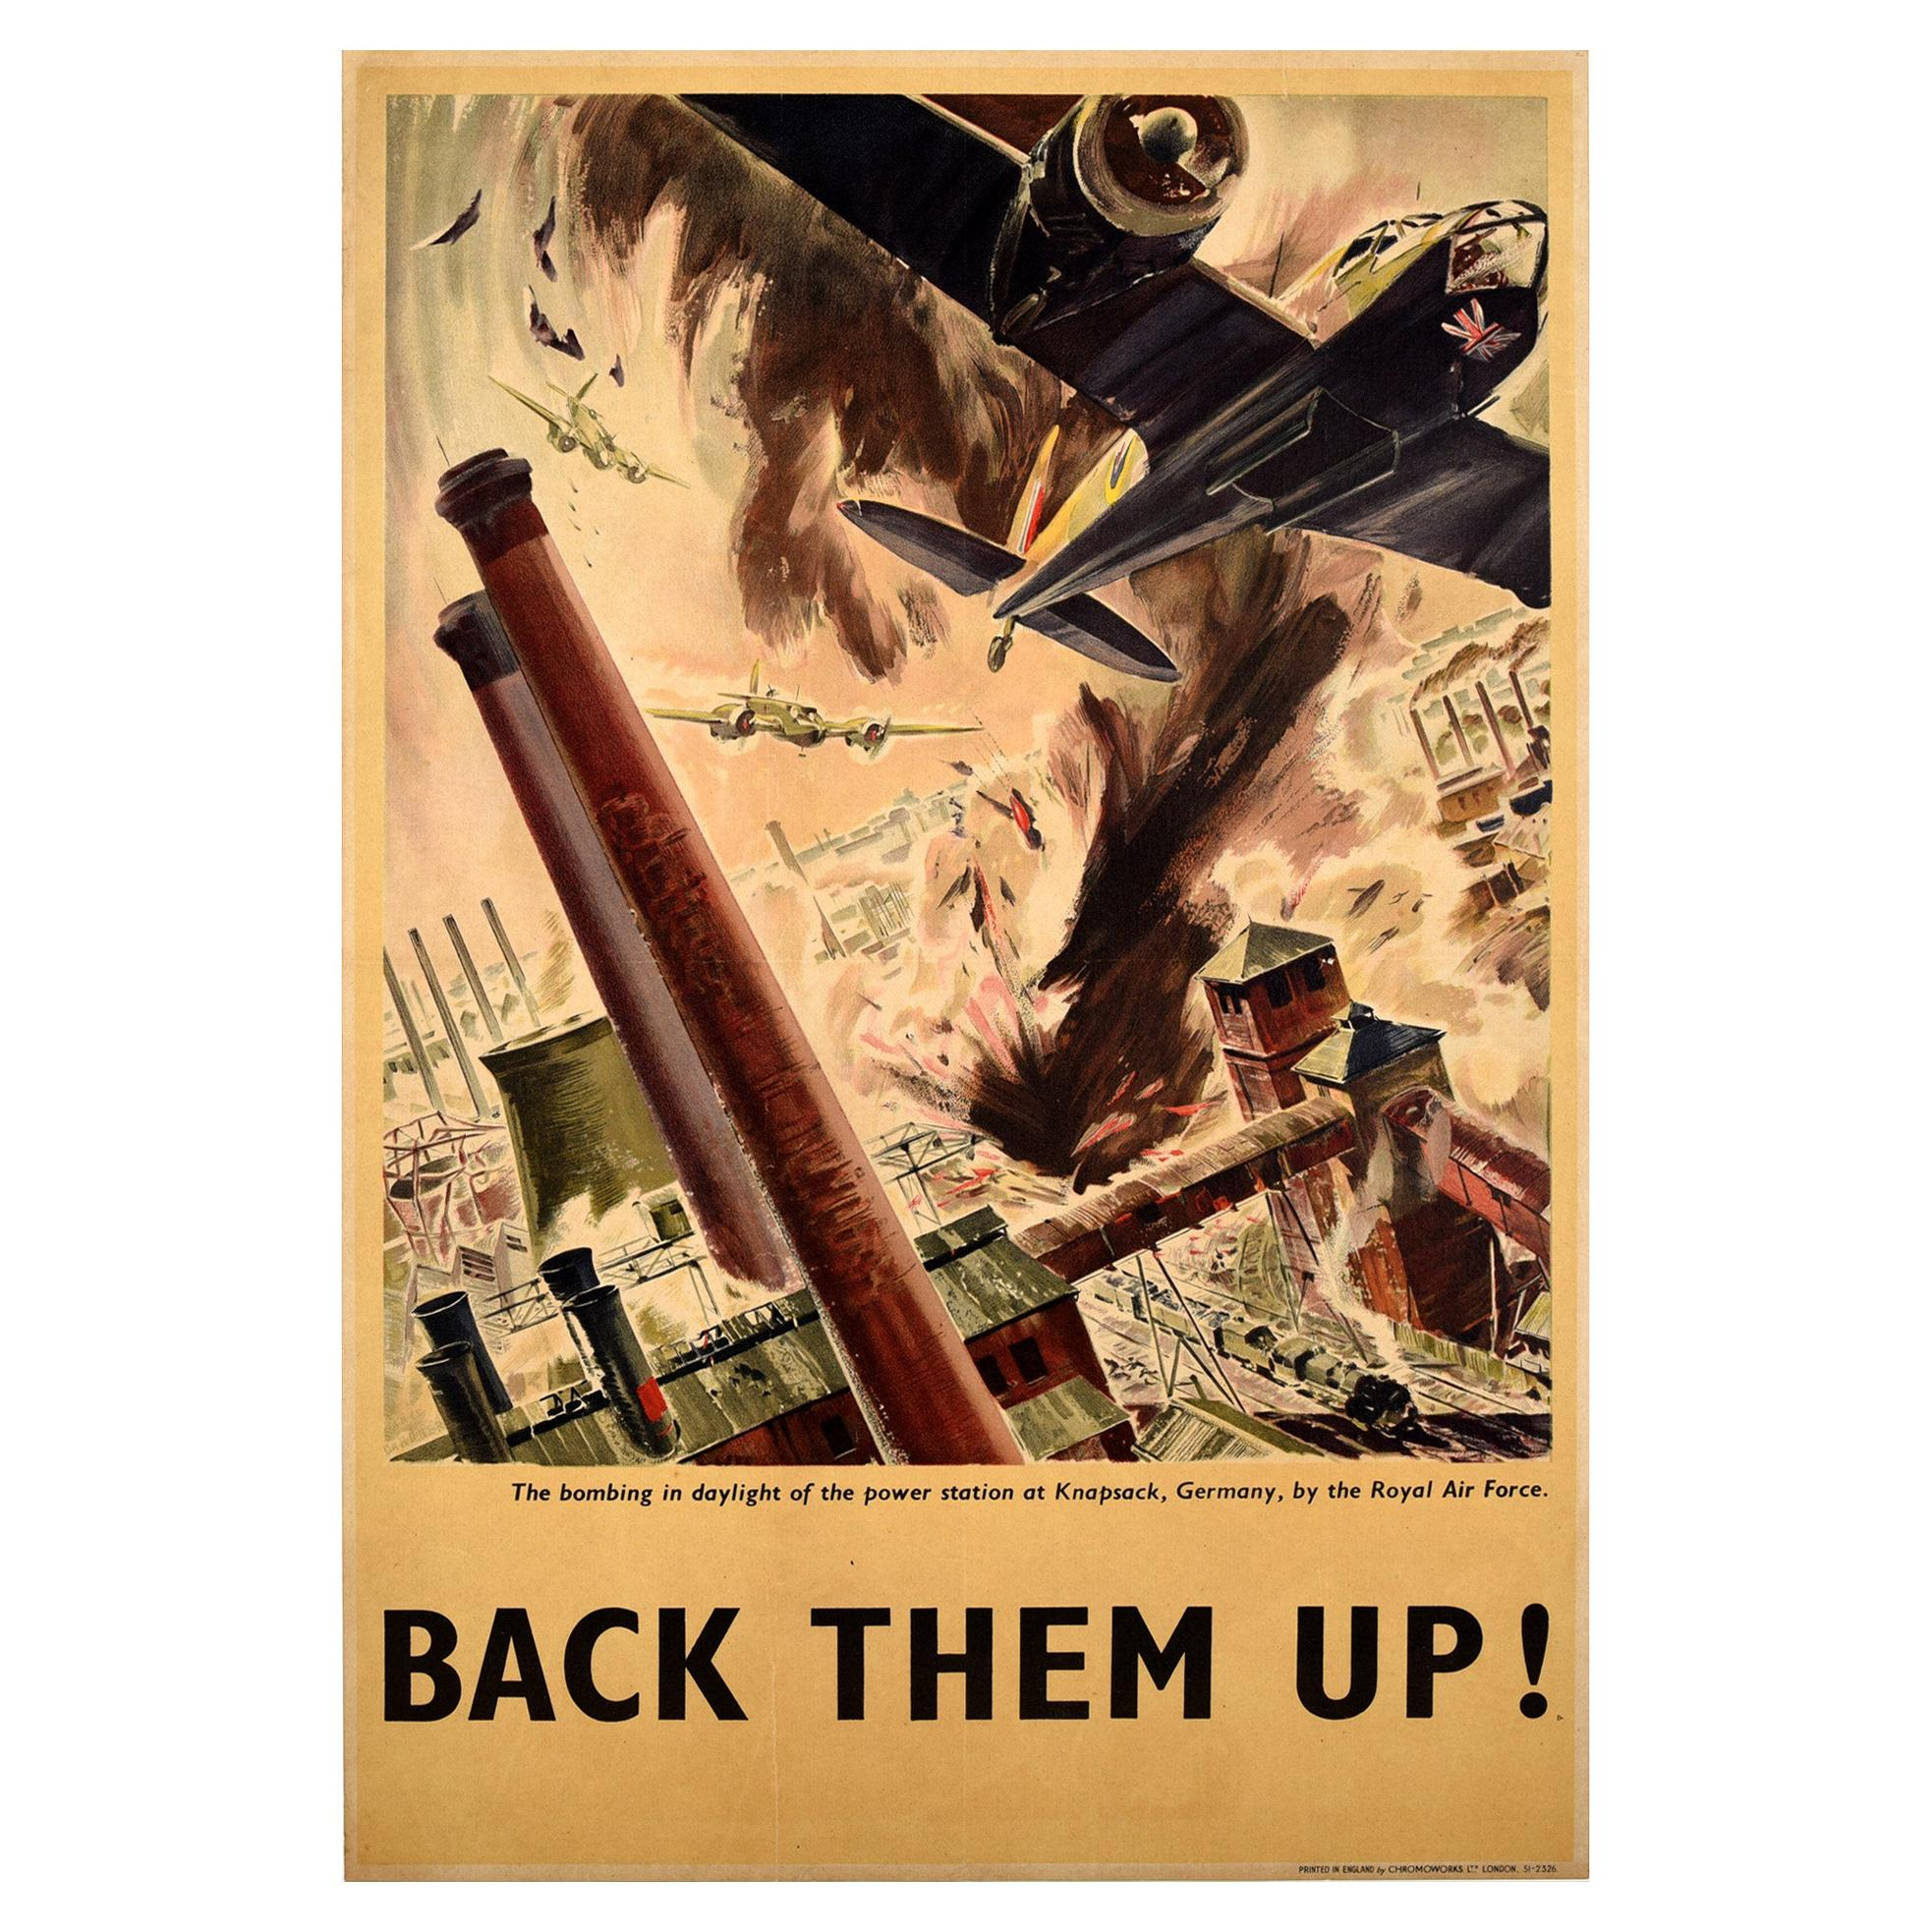 Original Vintage WWII Poster Back Them Up RAF Royal Air Force Aircraft Bomb Raid